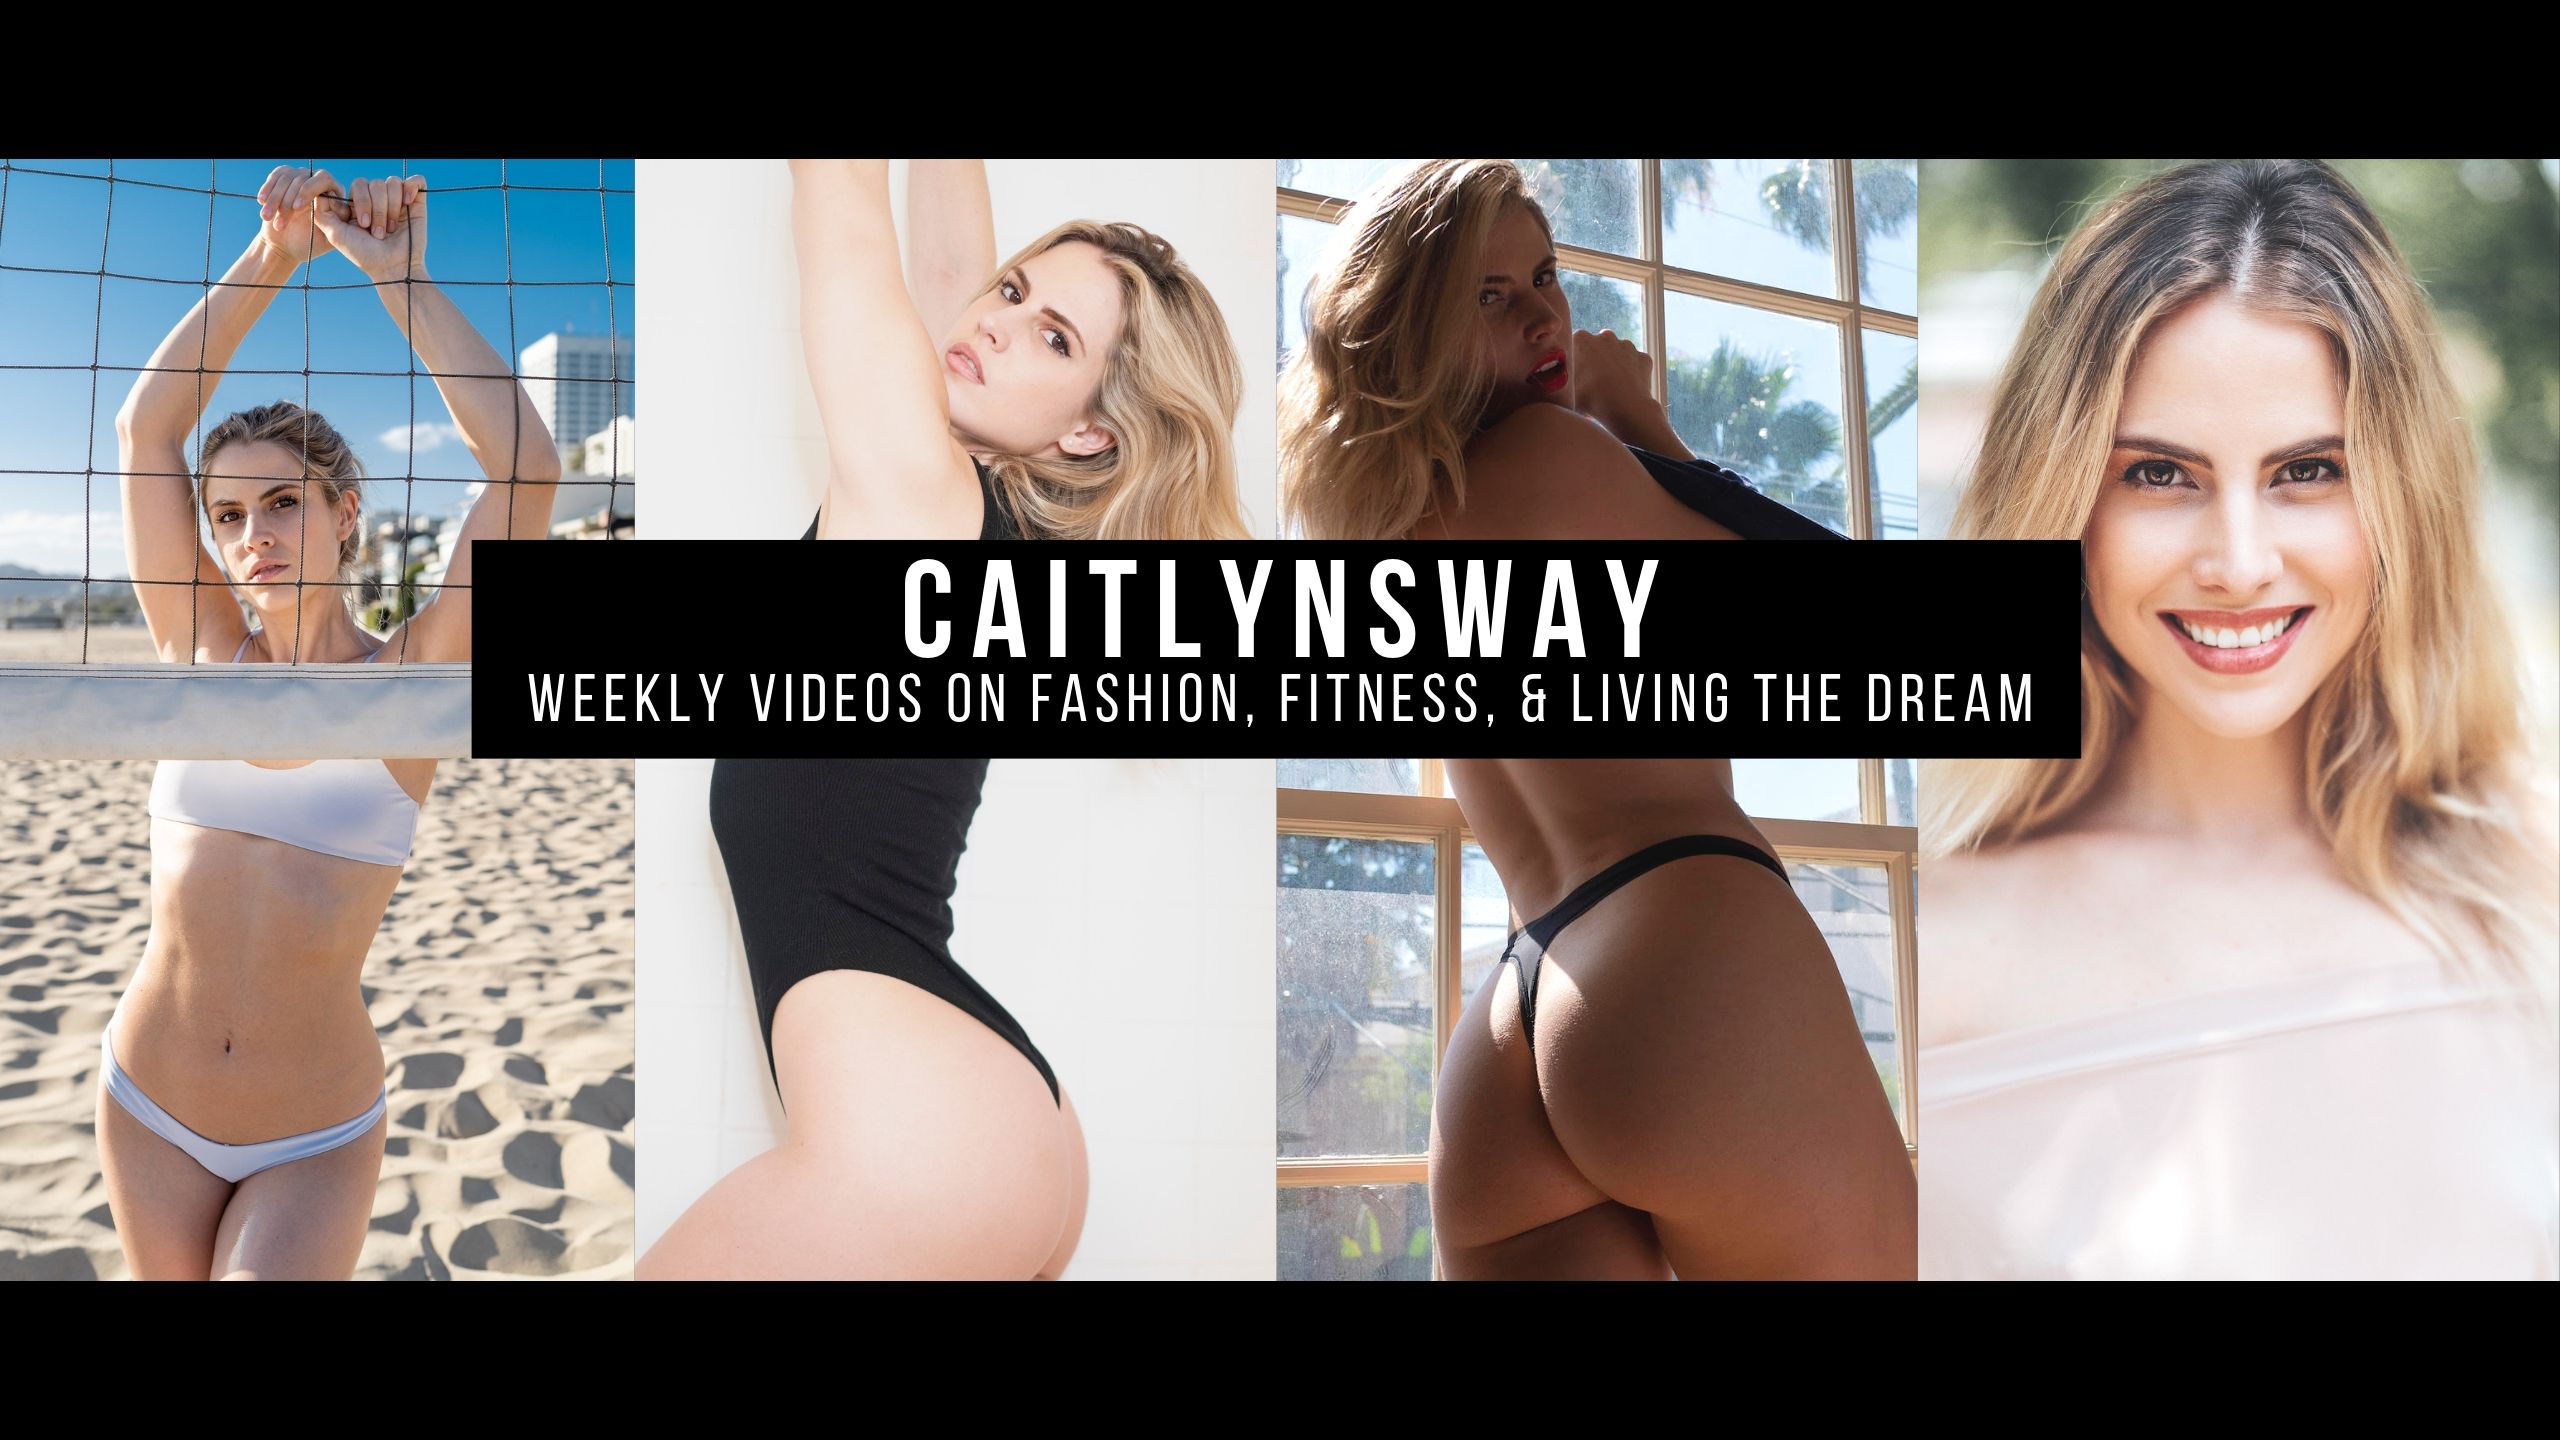 Caitlyn Sway - Model, Actress, Voice, & Youtube Personality